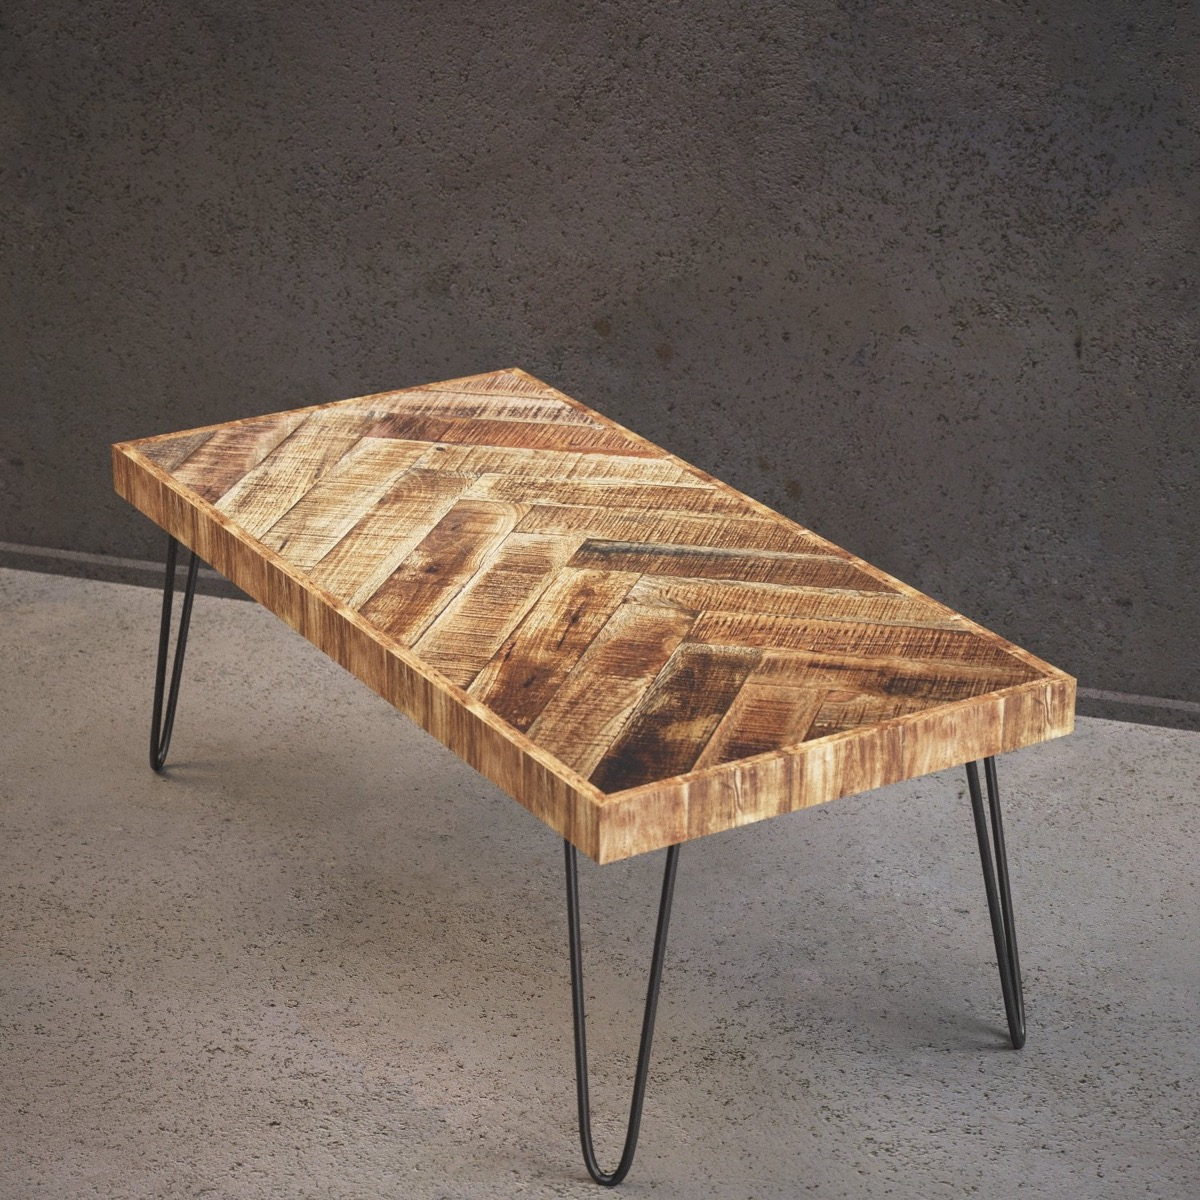 Rustic-Chevron-Patterned-Wooden-Coffee-Table-With-Black-Metal-Hair-Pin-Legs